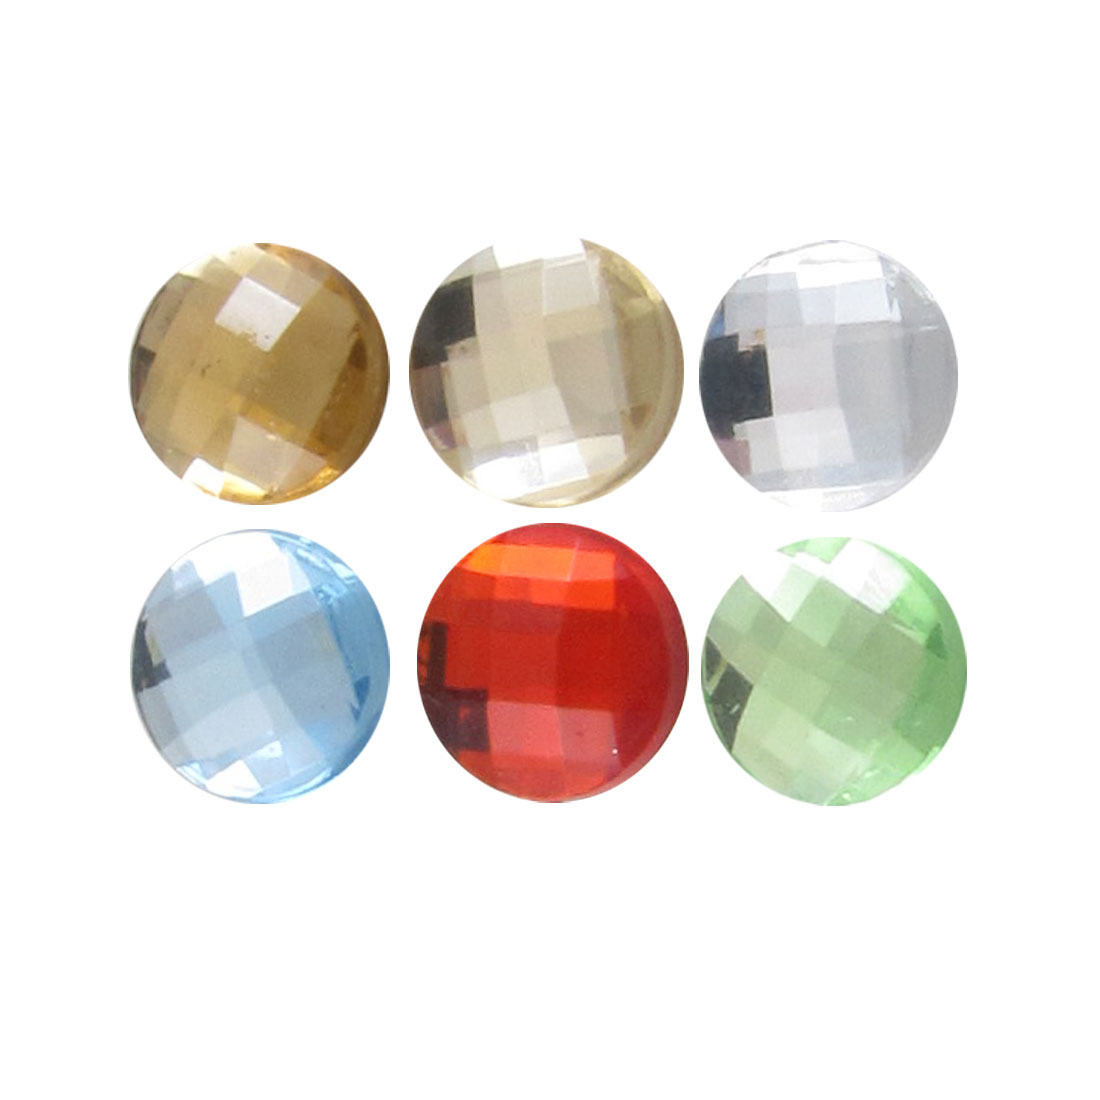 Glitter Round Crystal Home Button Stickers 6 in 1 for Cellphone